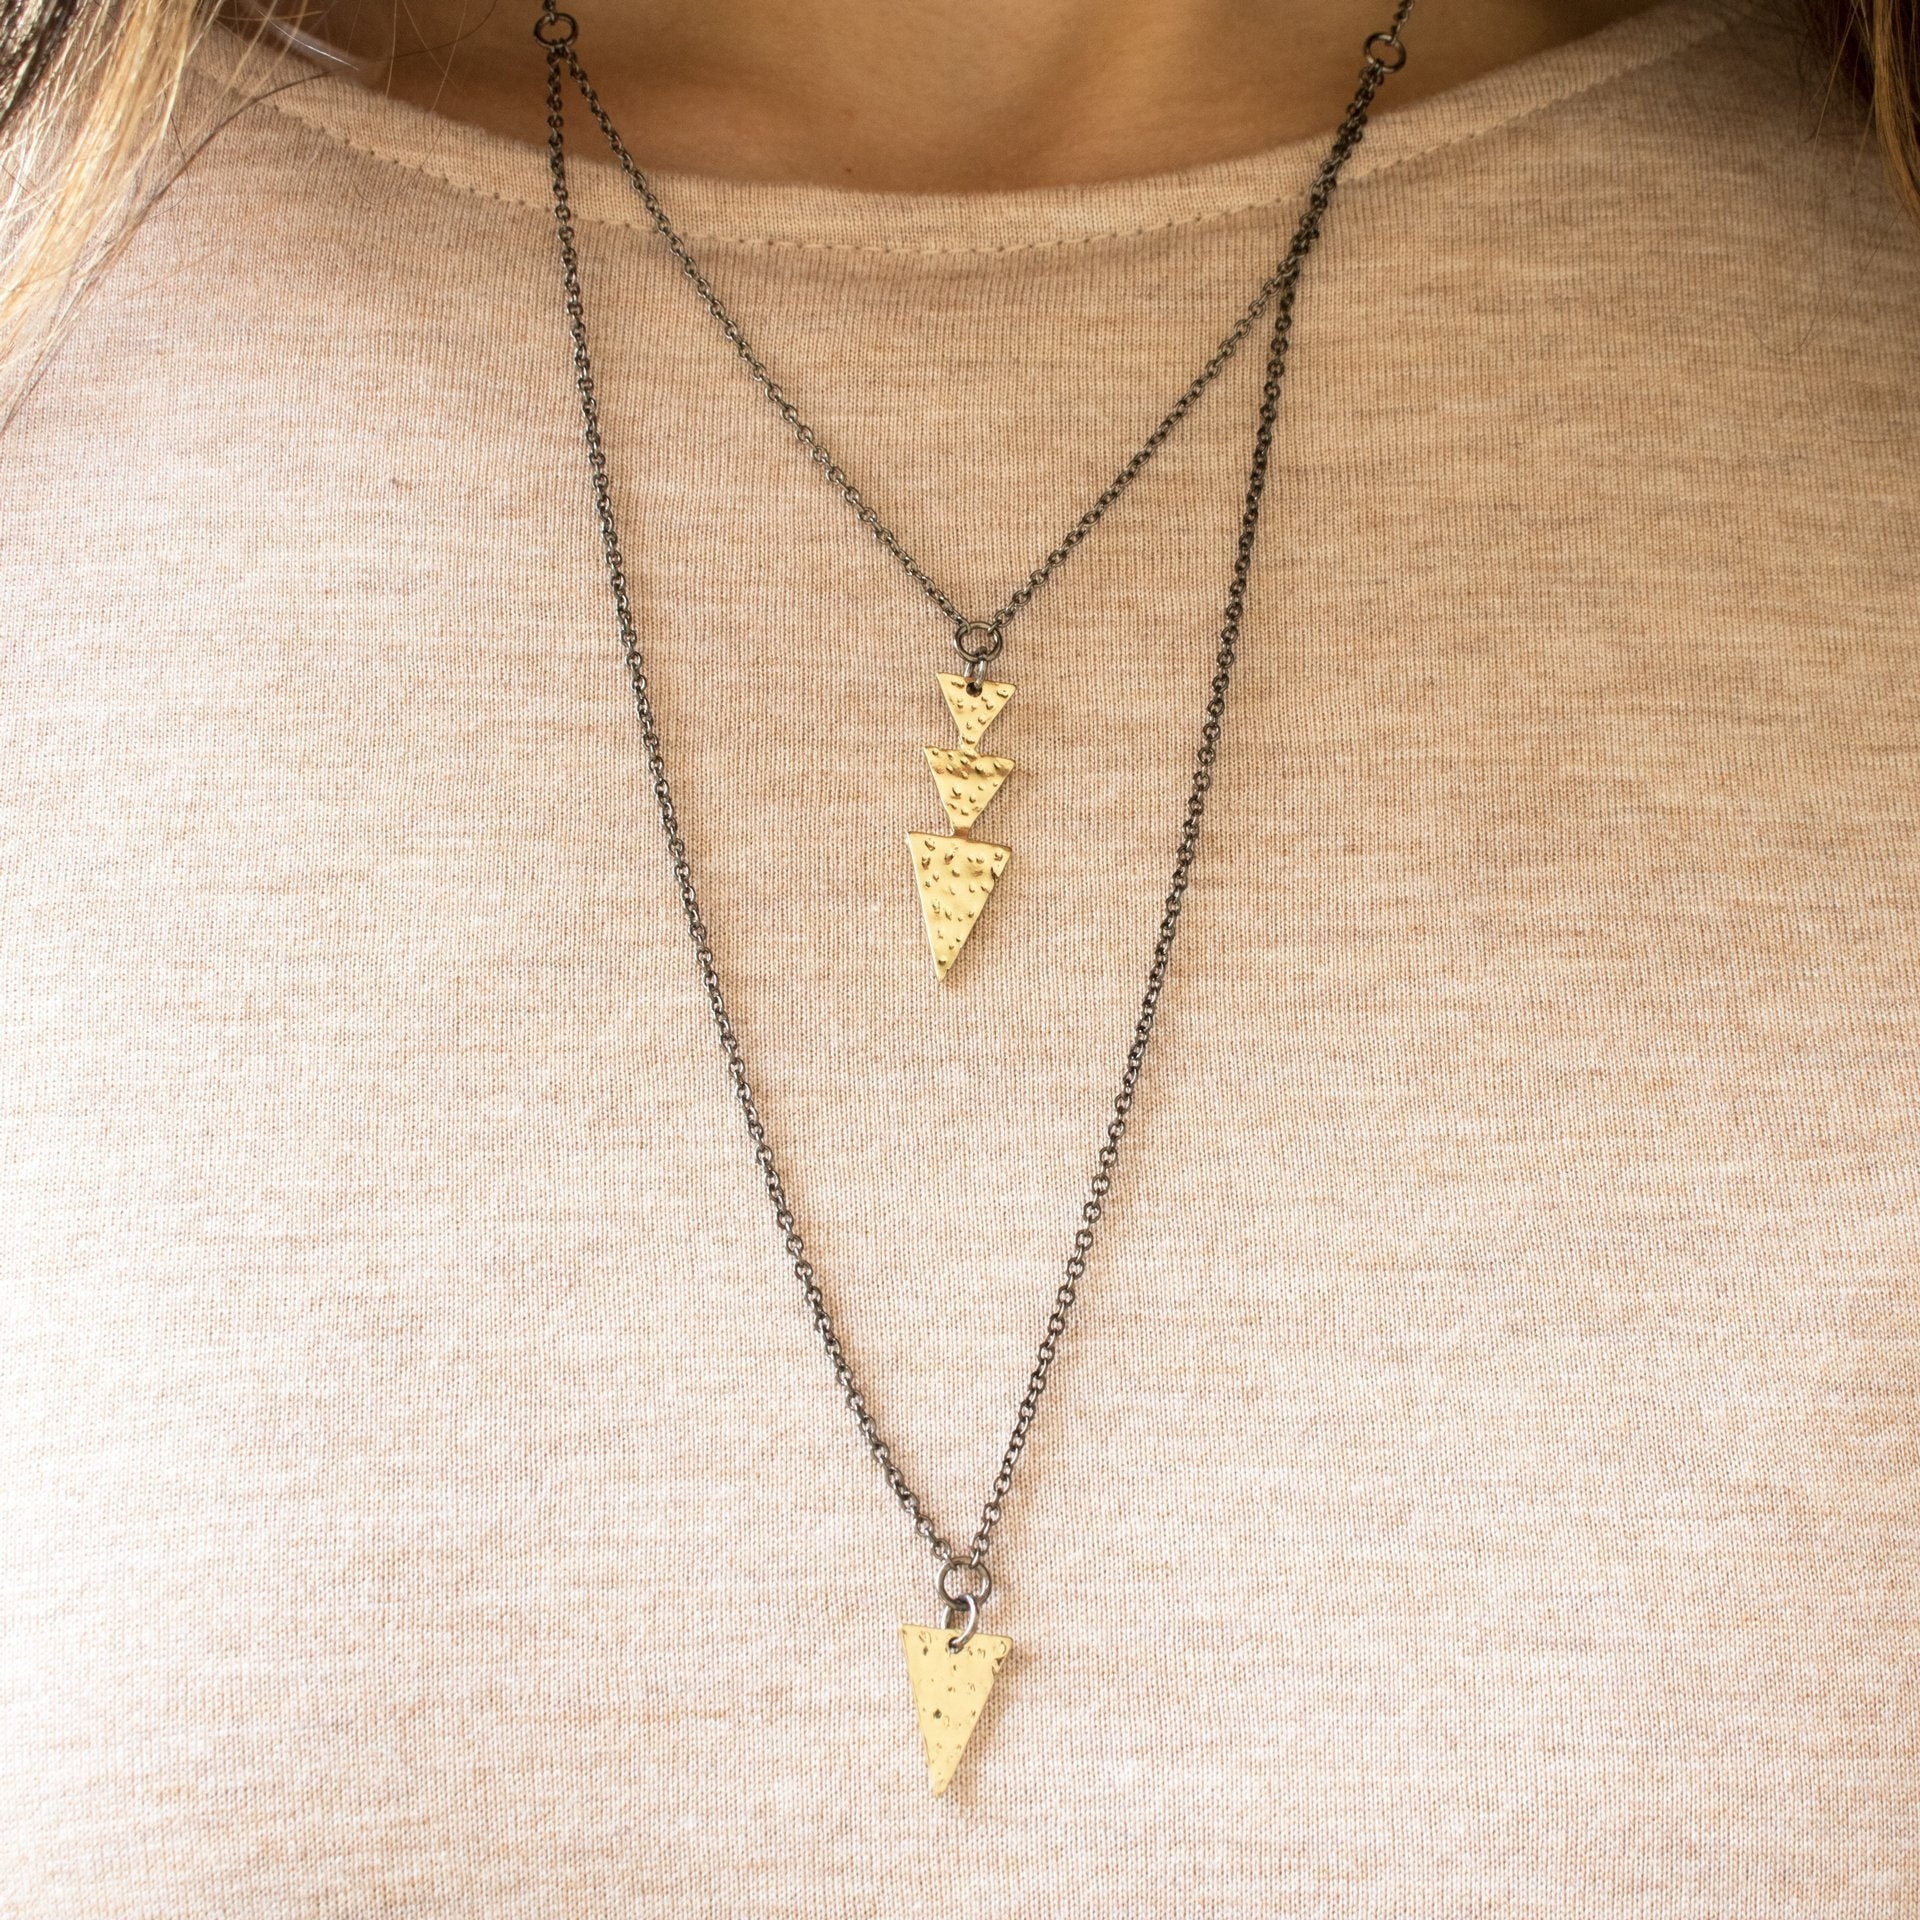 Mixed Metals Layered Arrow Necklace - Arlo and Arrows